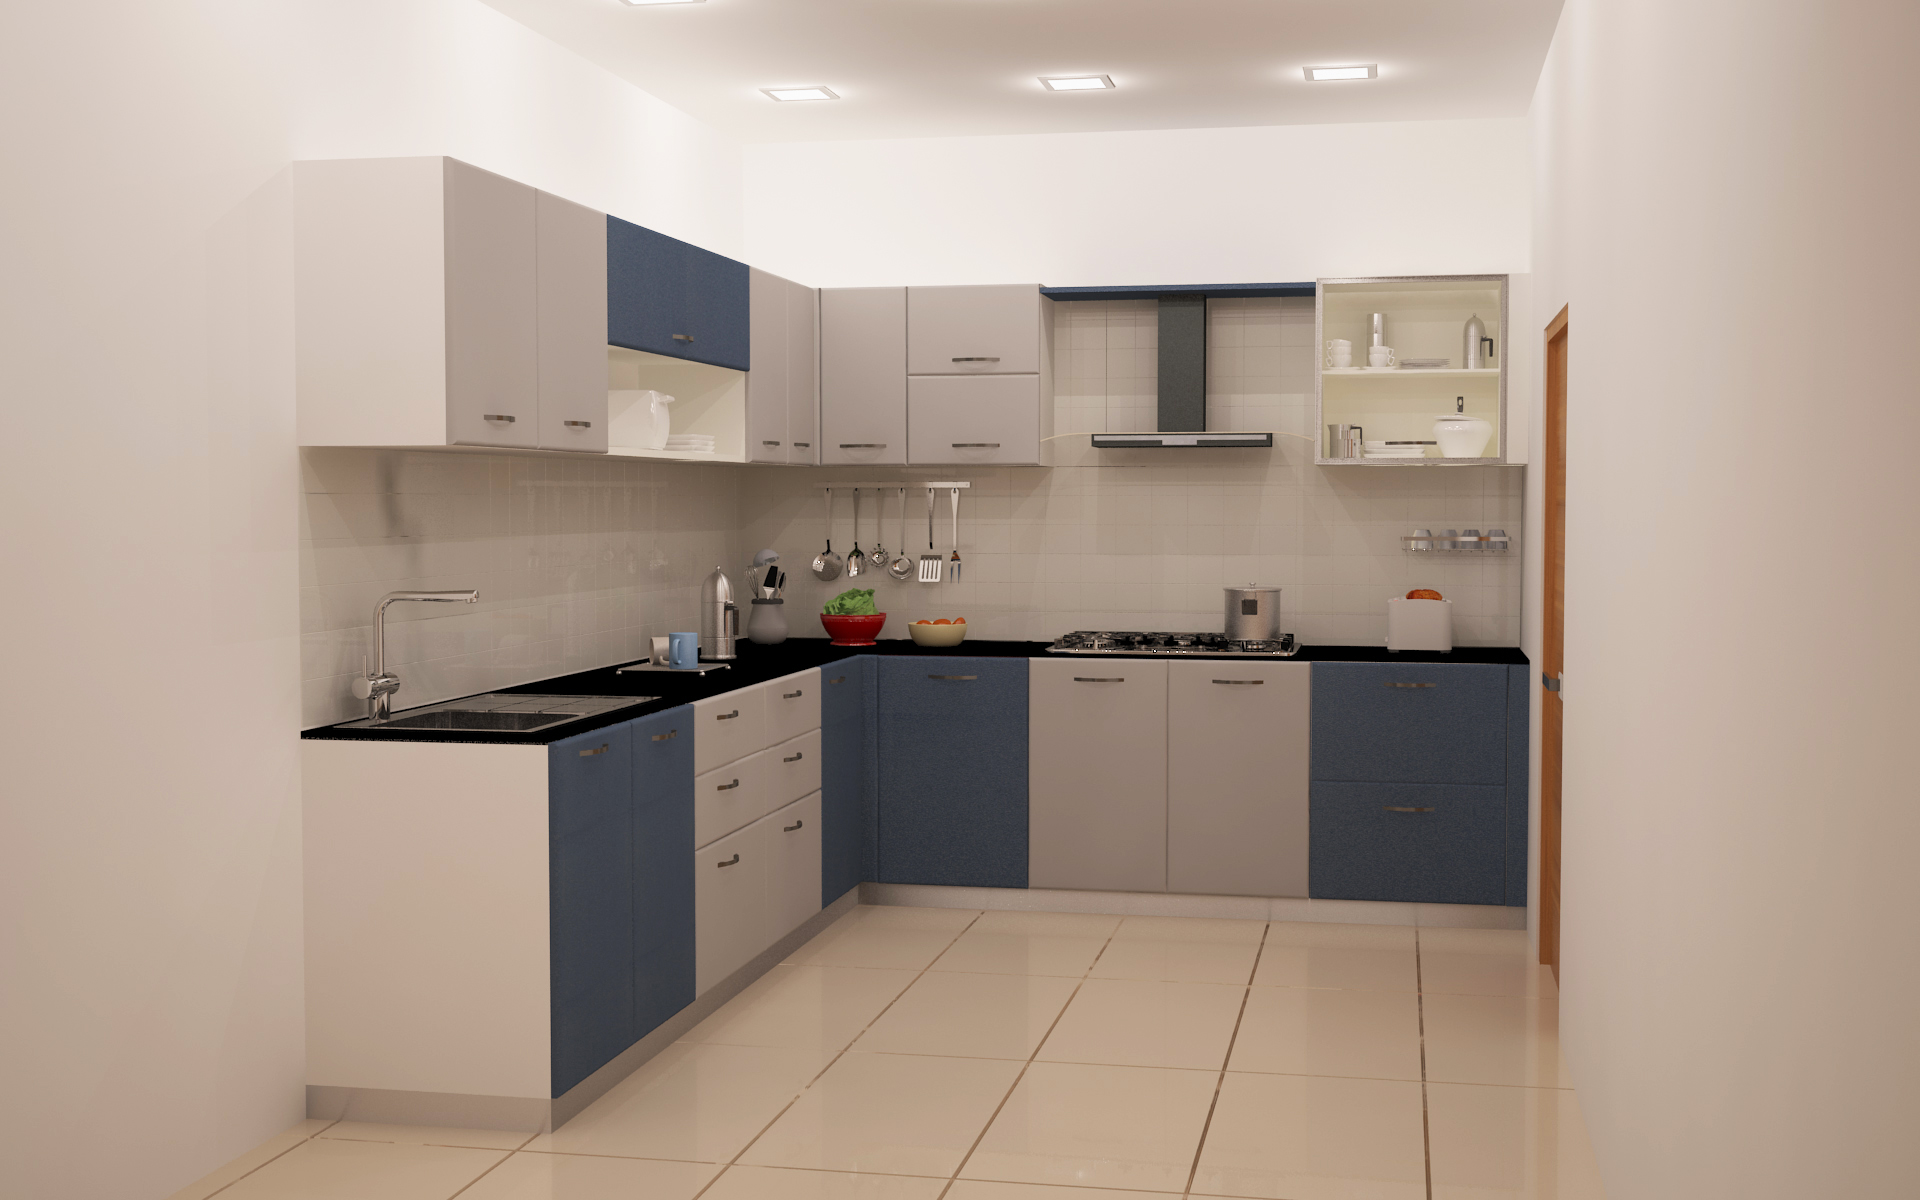 Best Modular Kitchen Designs in Bangalore | Customised Kitchen Designs